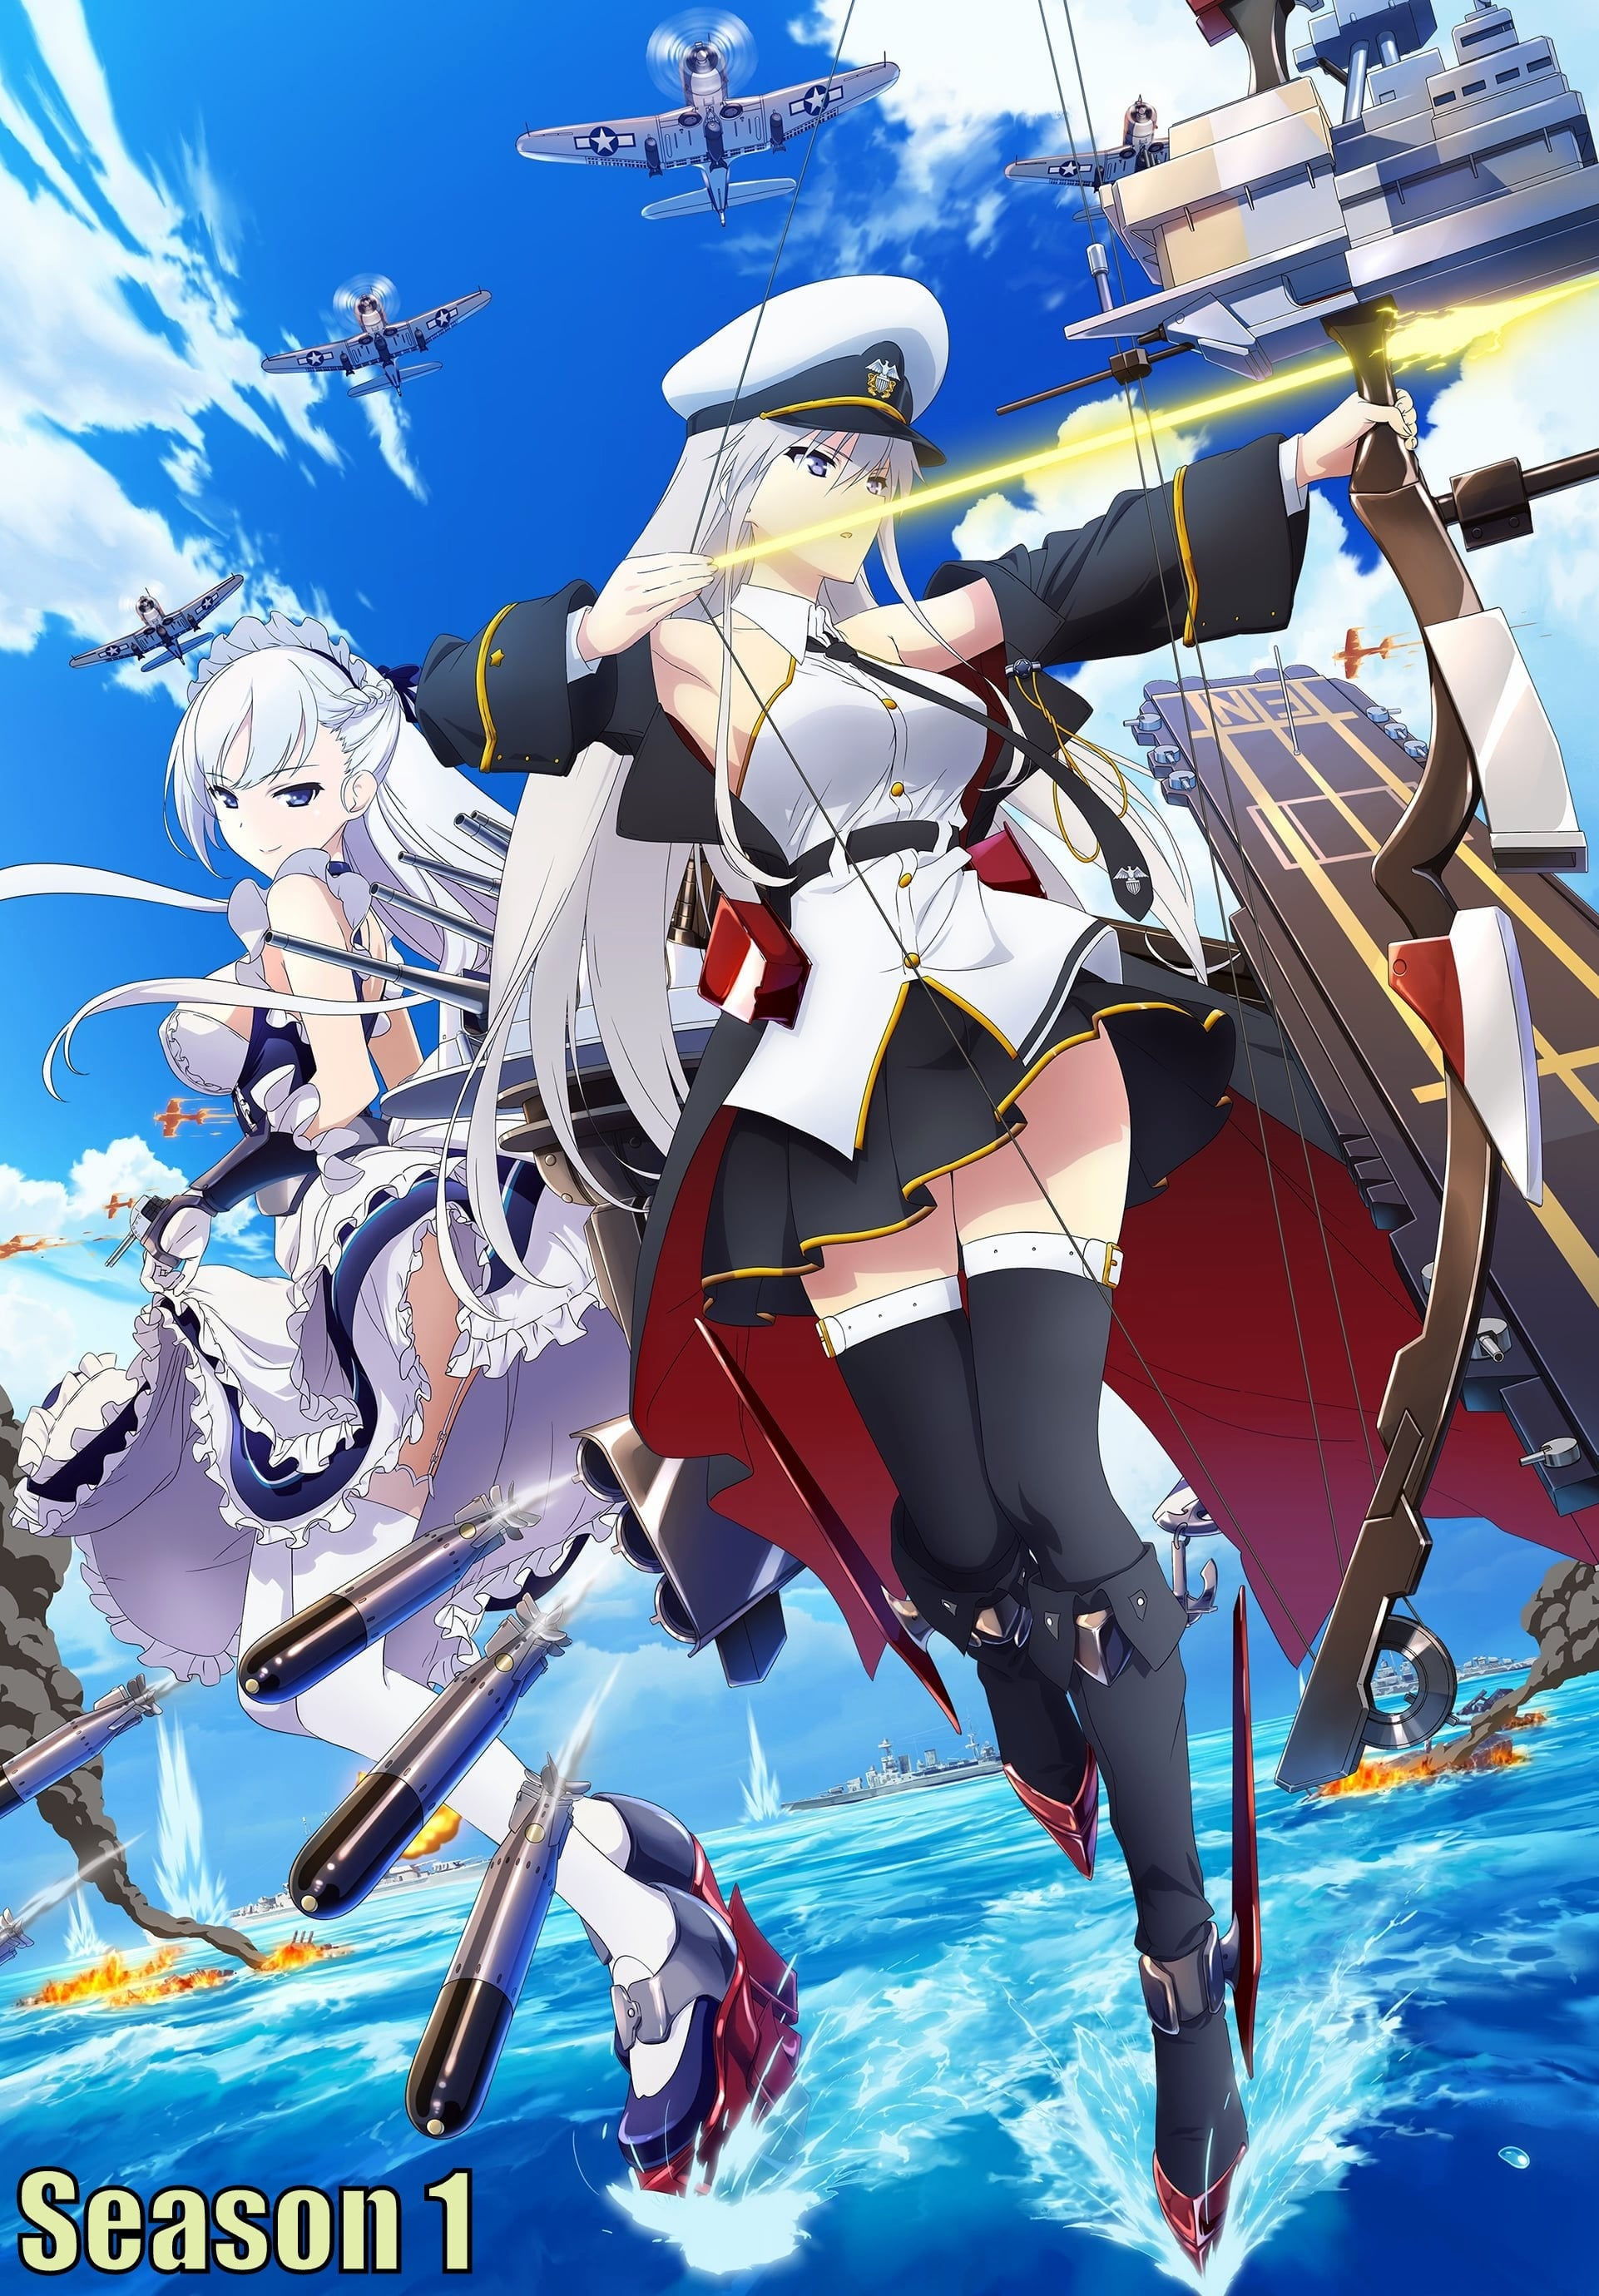 Azur Lane Season 1